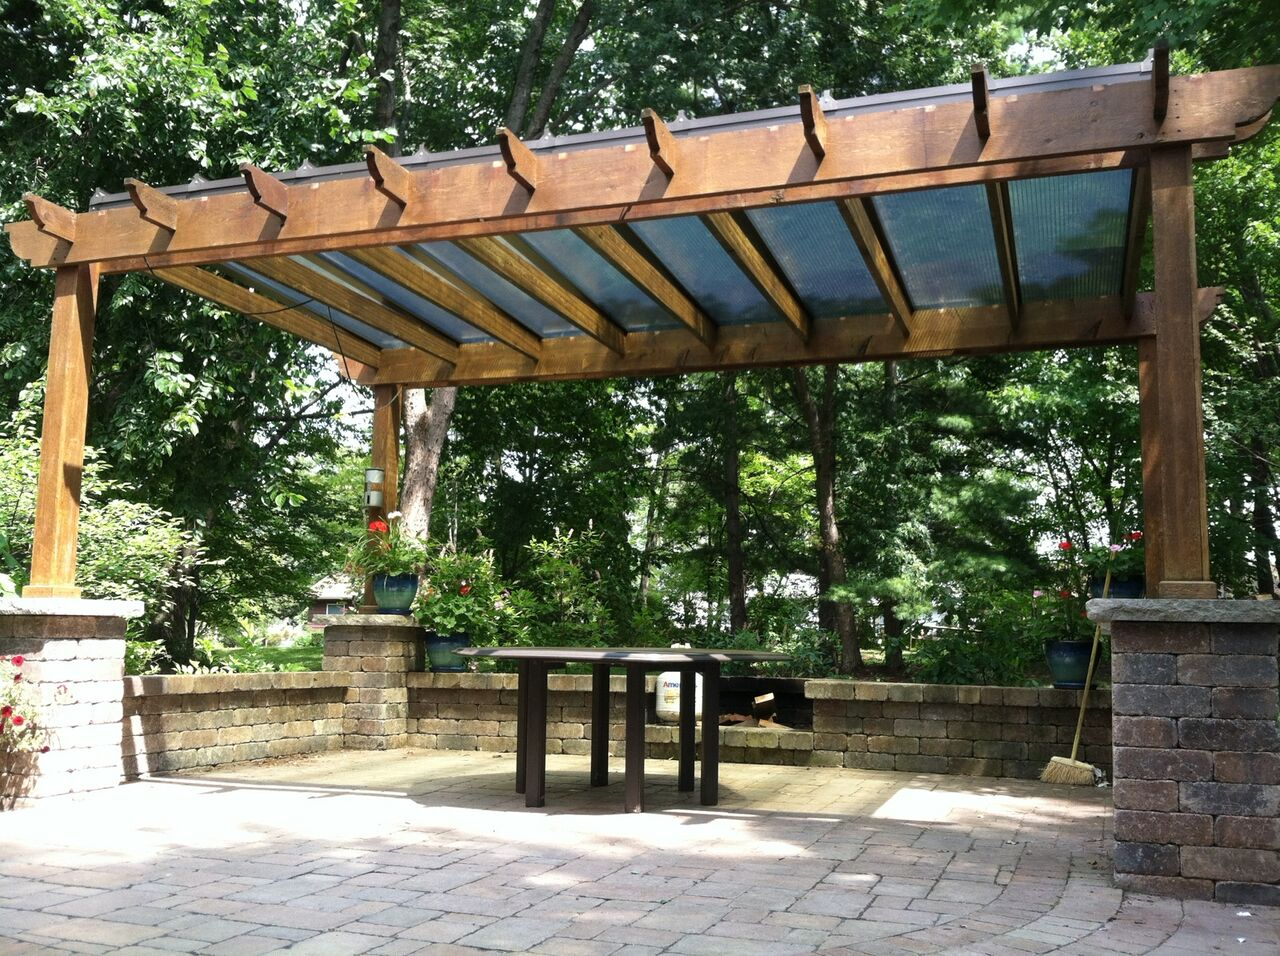 with brightcovers pergola covers you get to enjoy the beautiful design of ENYDERC